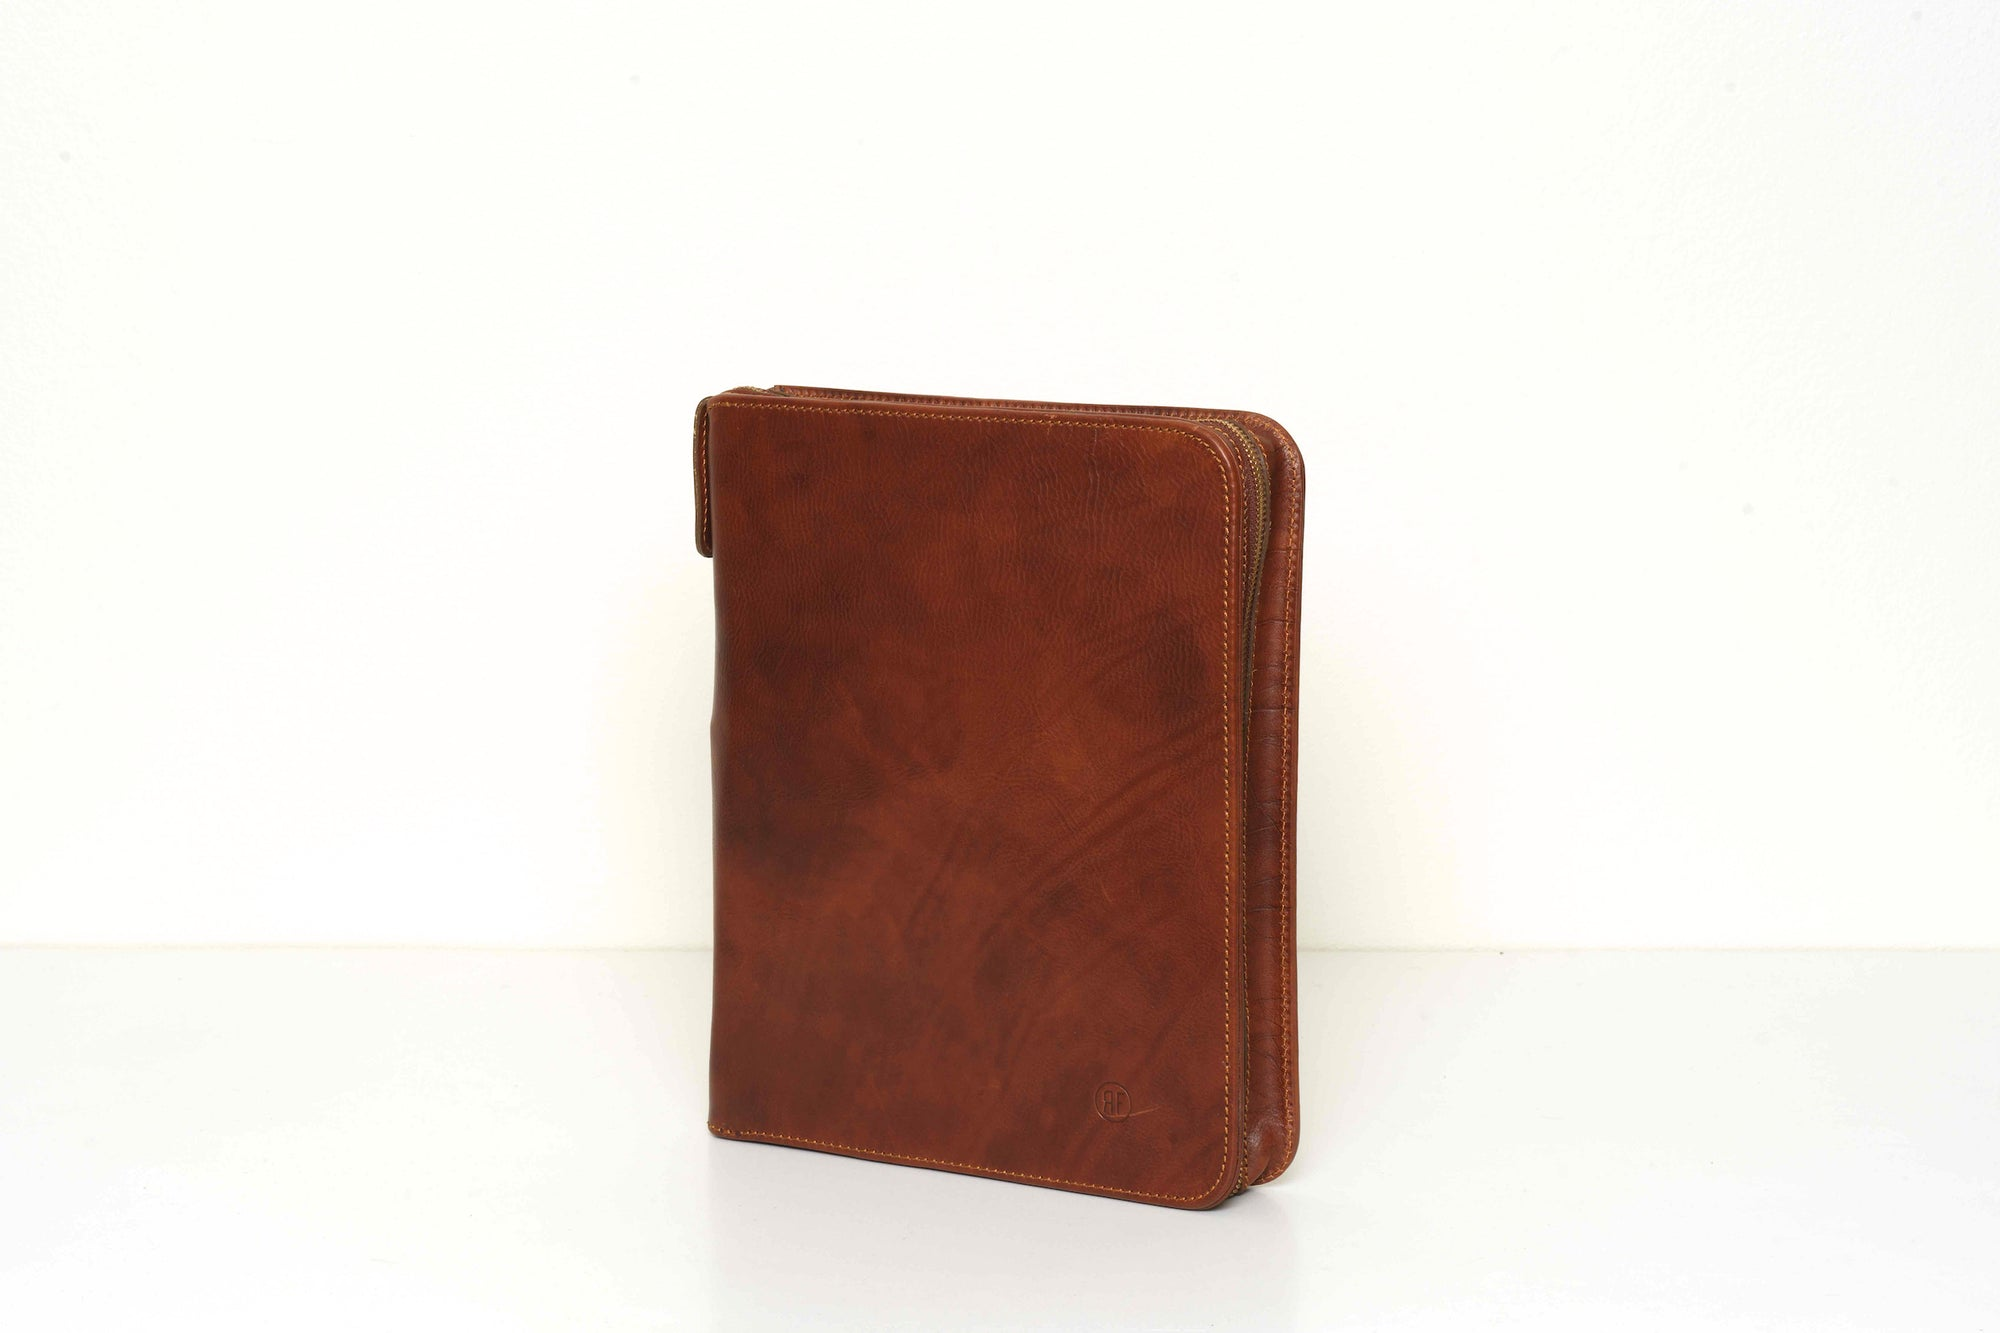 Quarto A4 Brown Leather Compendium